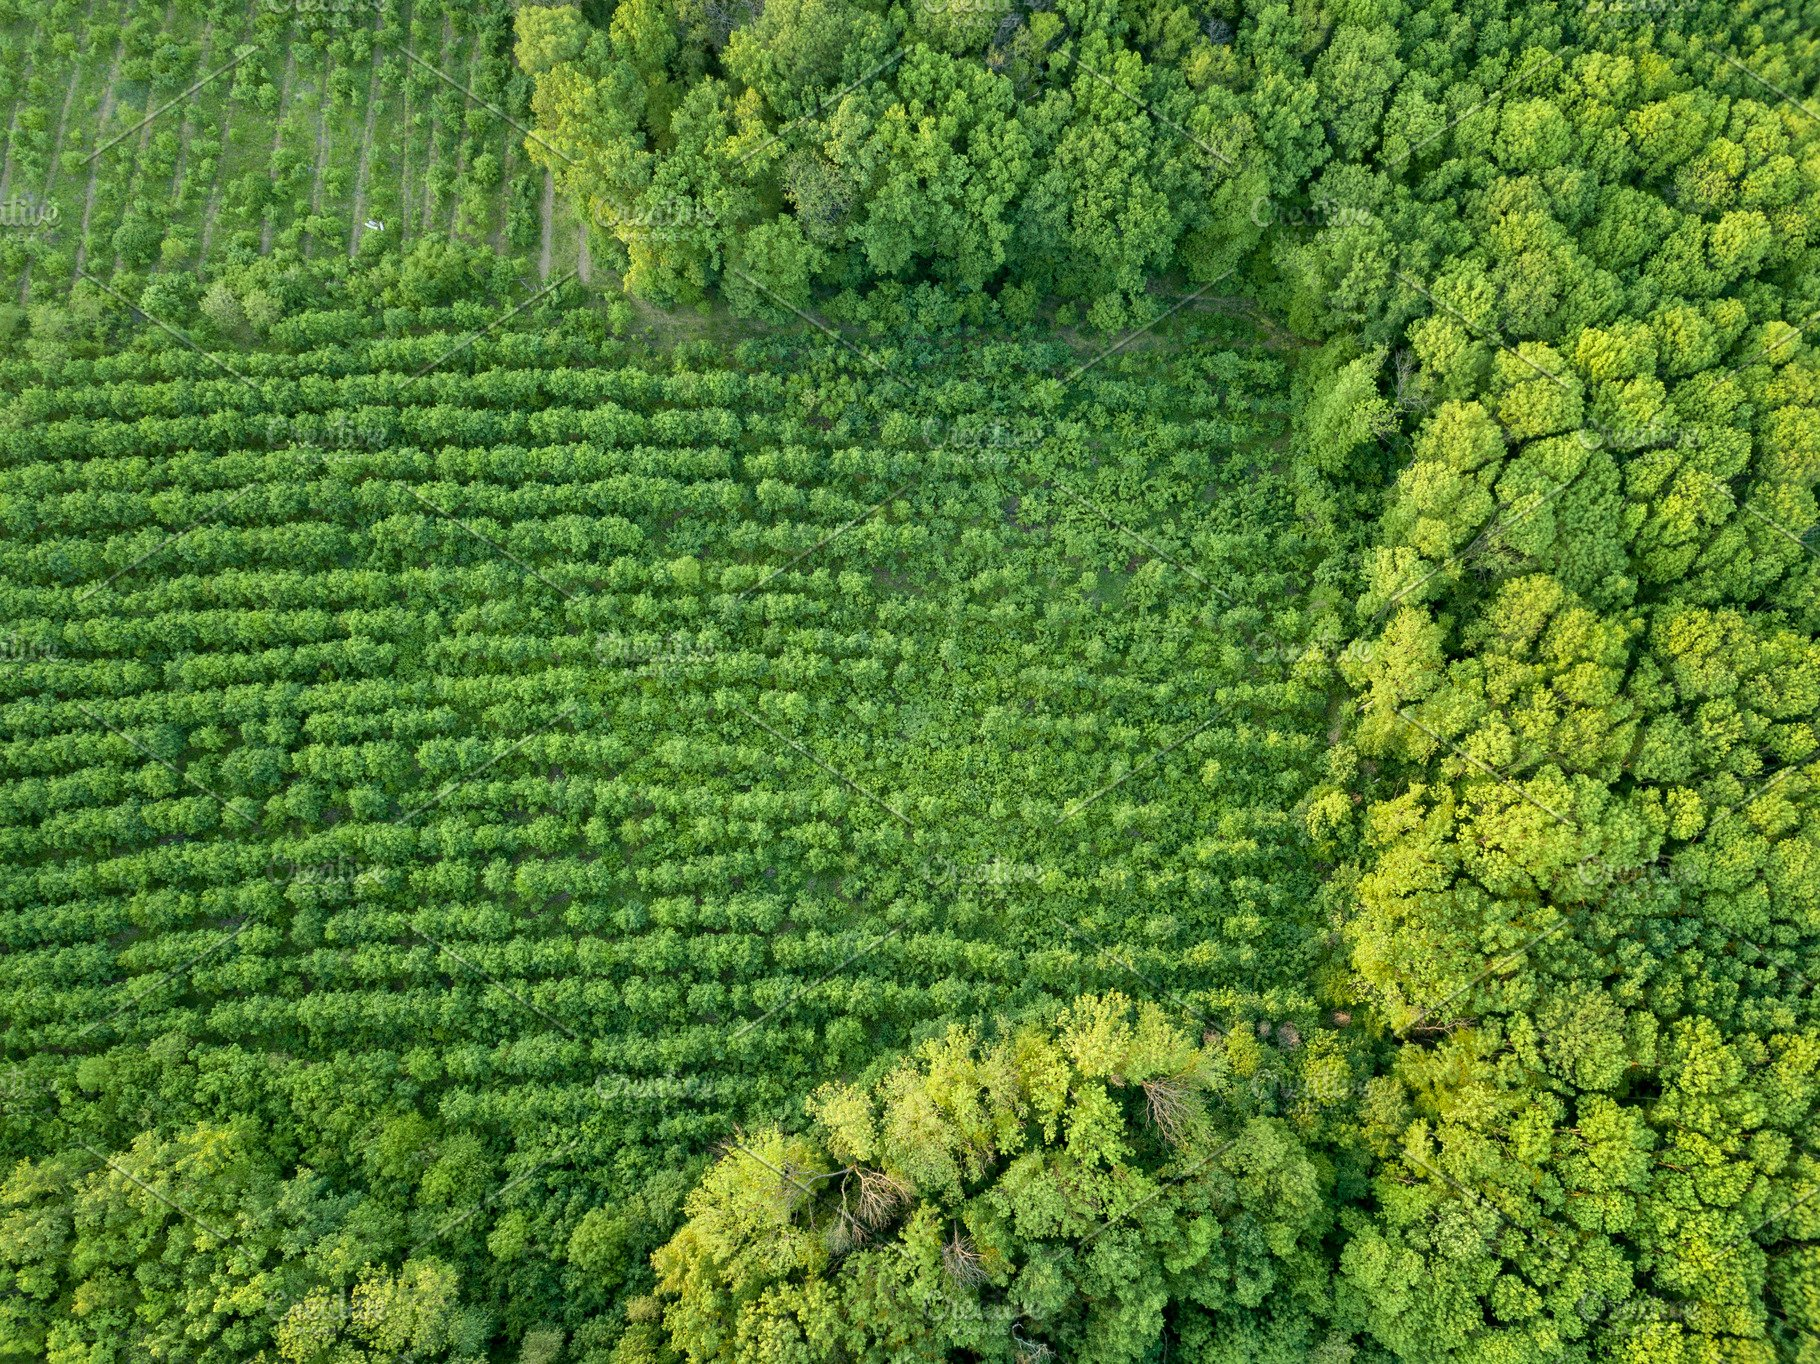 Forest and plantations of young trees  Concept of forest conservation   Drone photographу